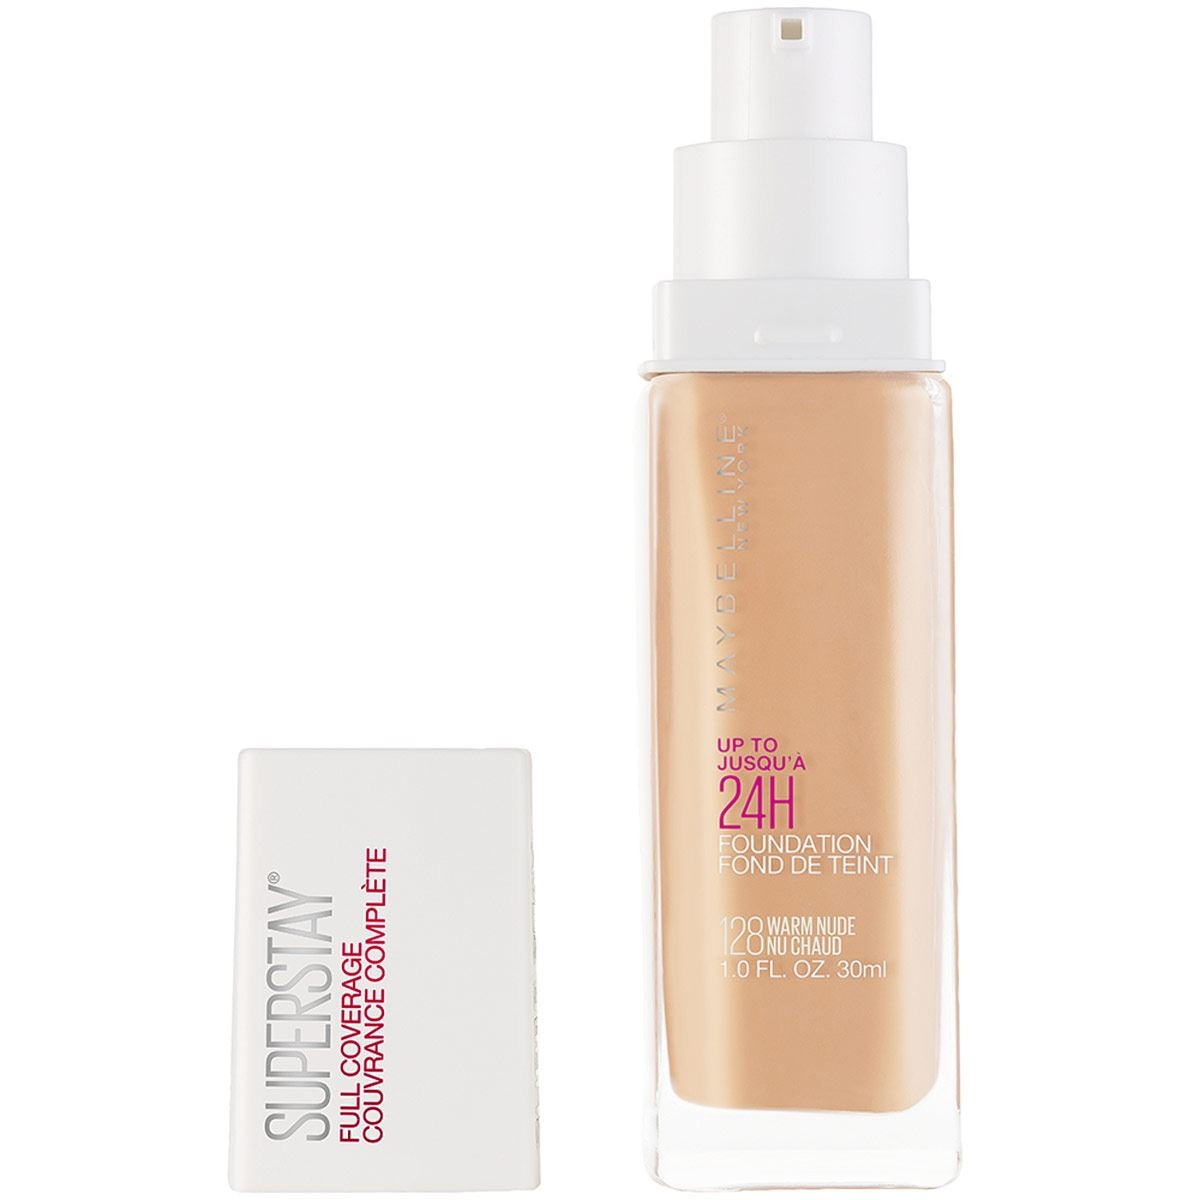 Base Maybelline Superstay Full Coverage 128 Warm Nude